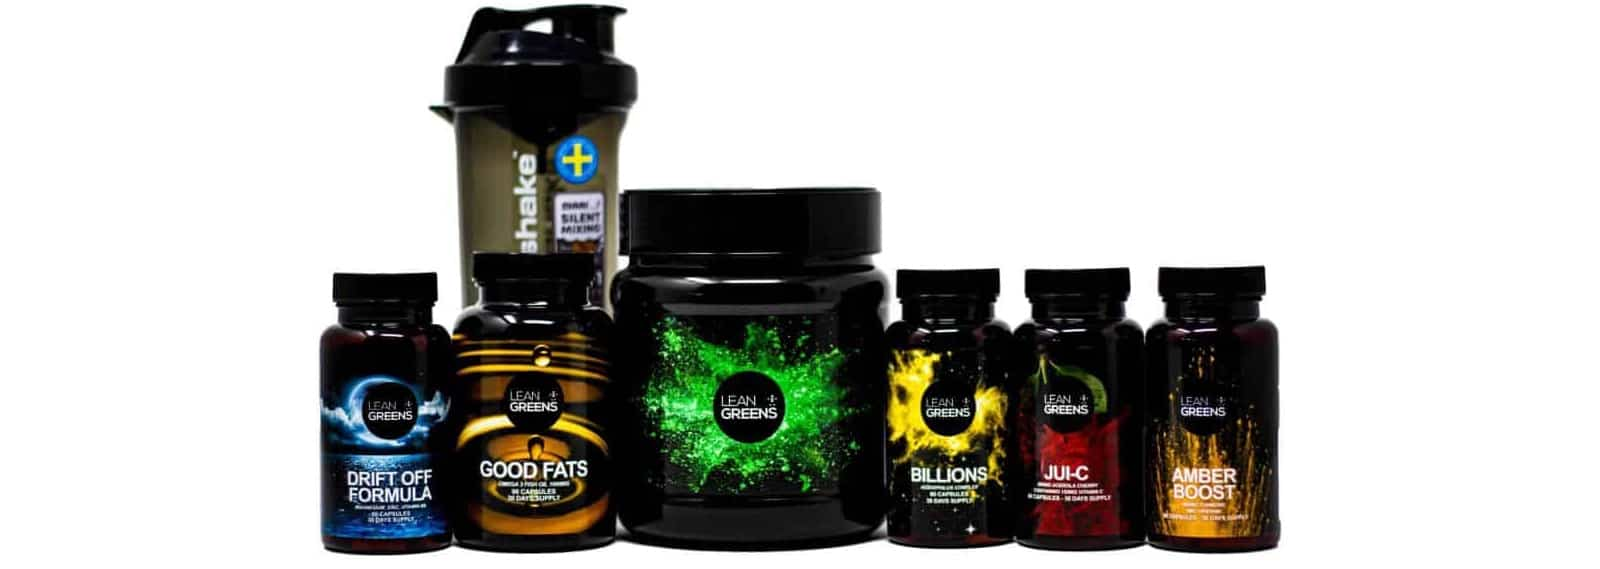 All Lean Greens products